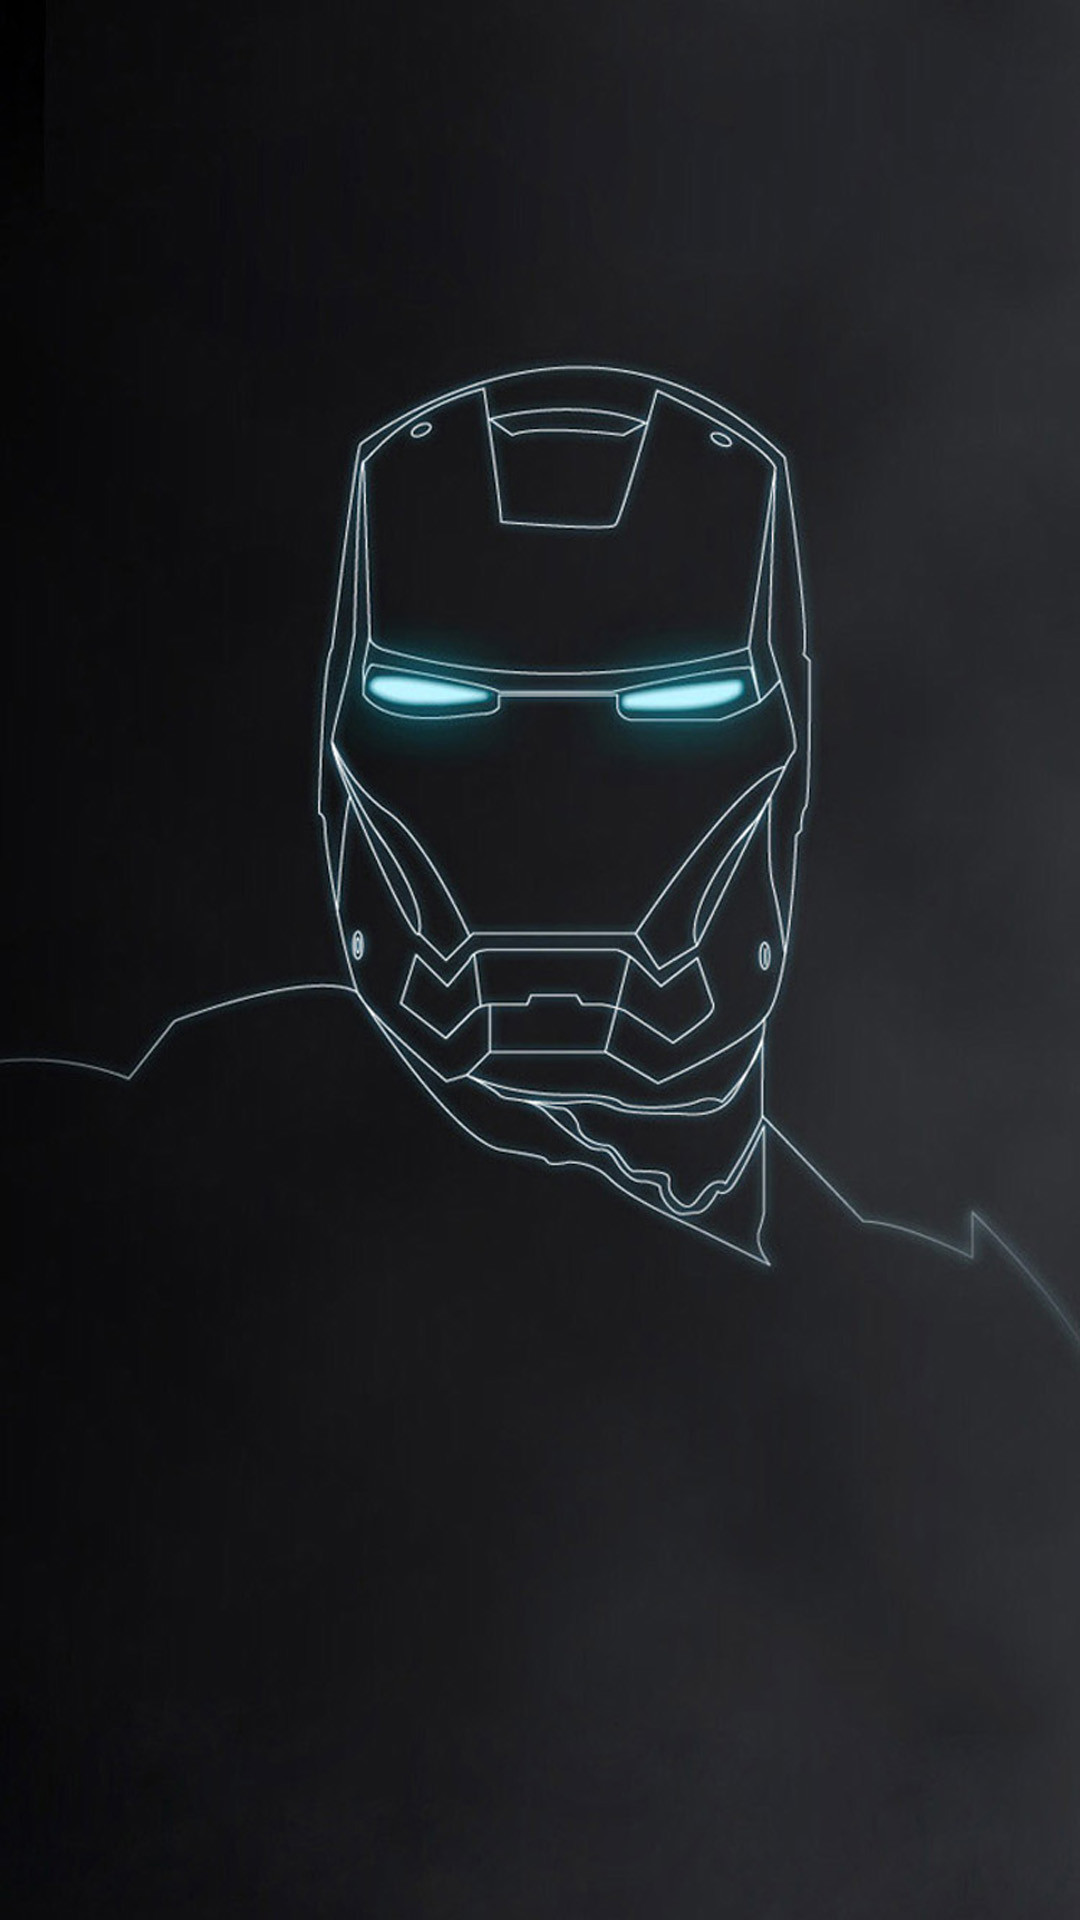 1080x1920 Iron Man 3 Movie iPhone 6 Wallpaper and iPhone 6 Plus Wallpapers